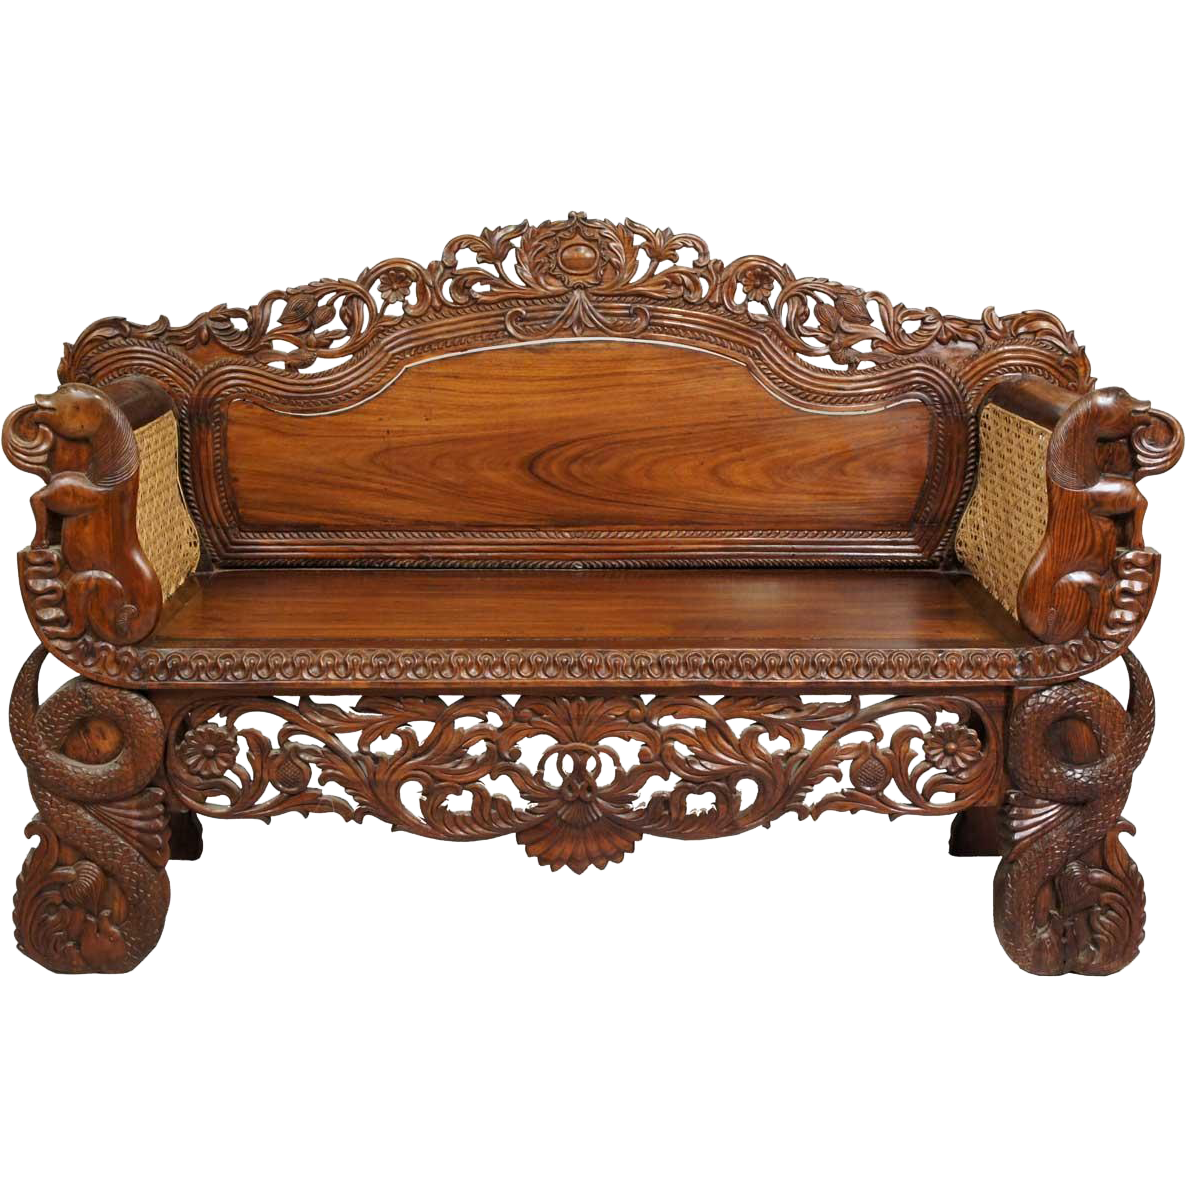 Item Id Ch1359 In Store Backroom Carved Furniture Wooden Sofa Settee